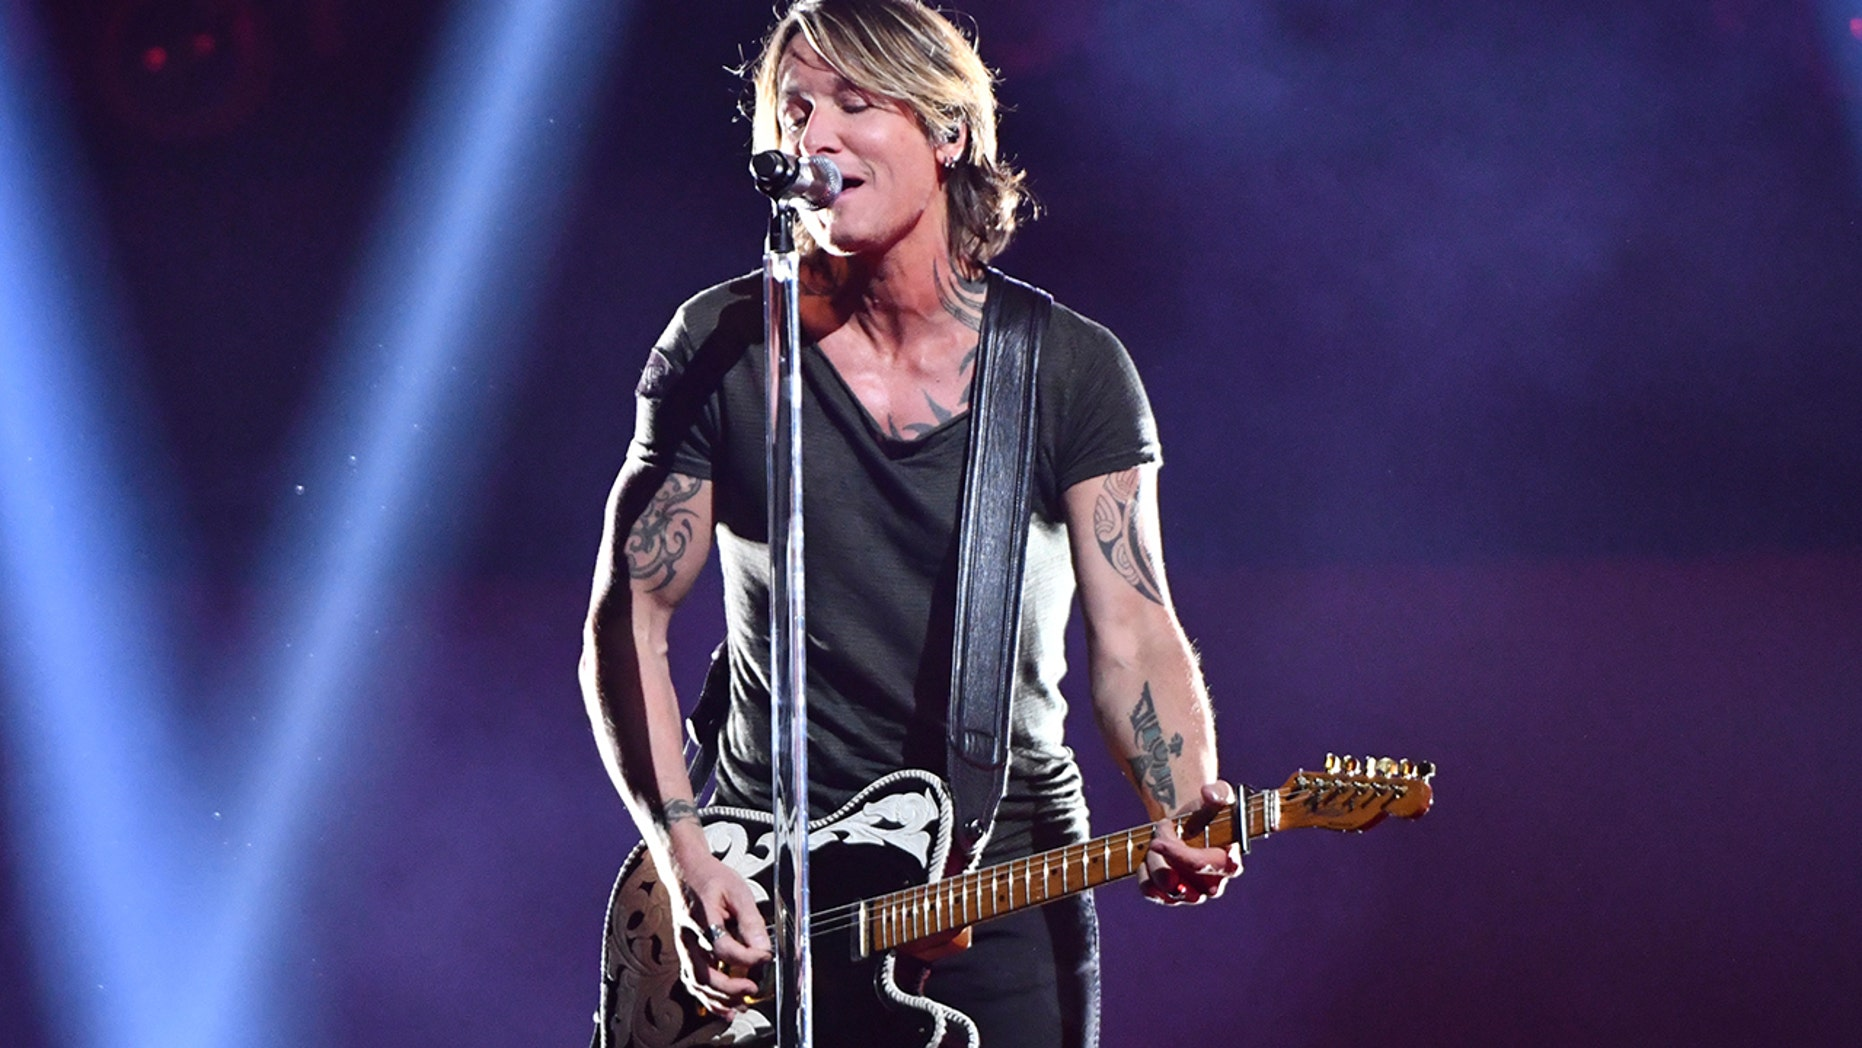 """Following his performance of """"Never Comin' Down,"""" Keith Urban took home the Entertainer of the Year award at the CMAs on Wednesday."""